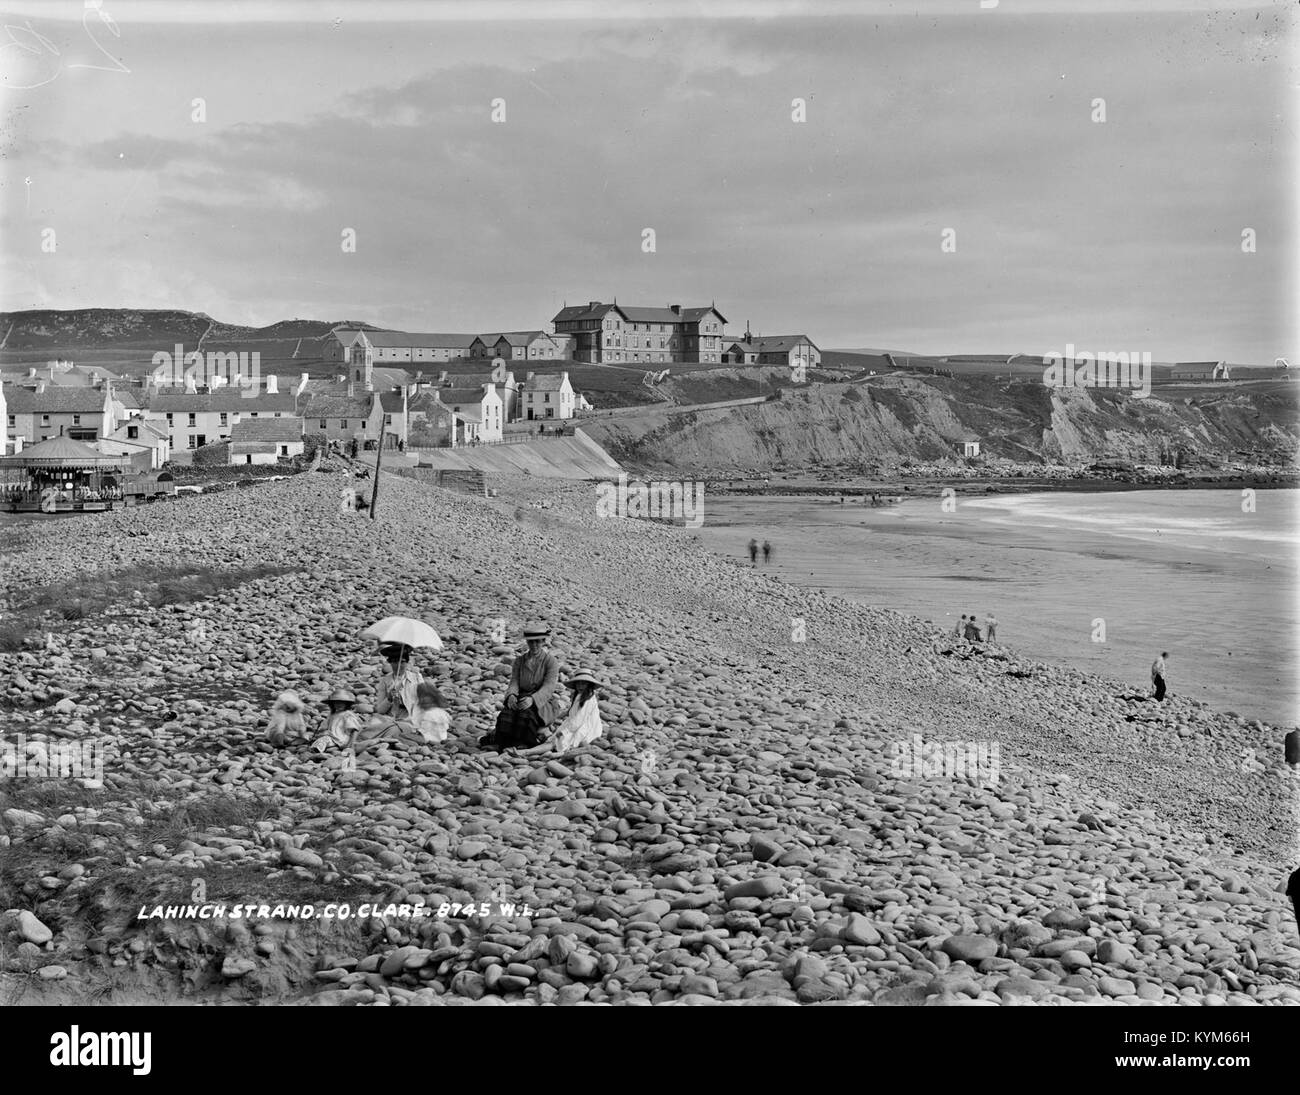 Strand, Lahinch, Co Clare 27720256349 o - Stock Image